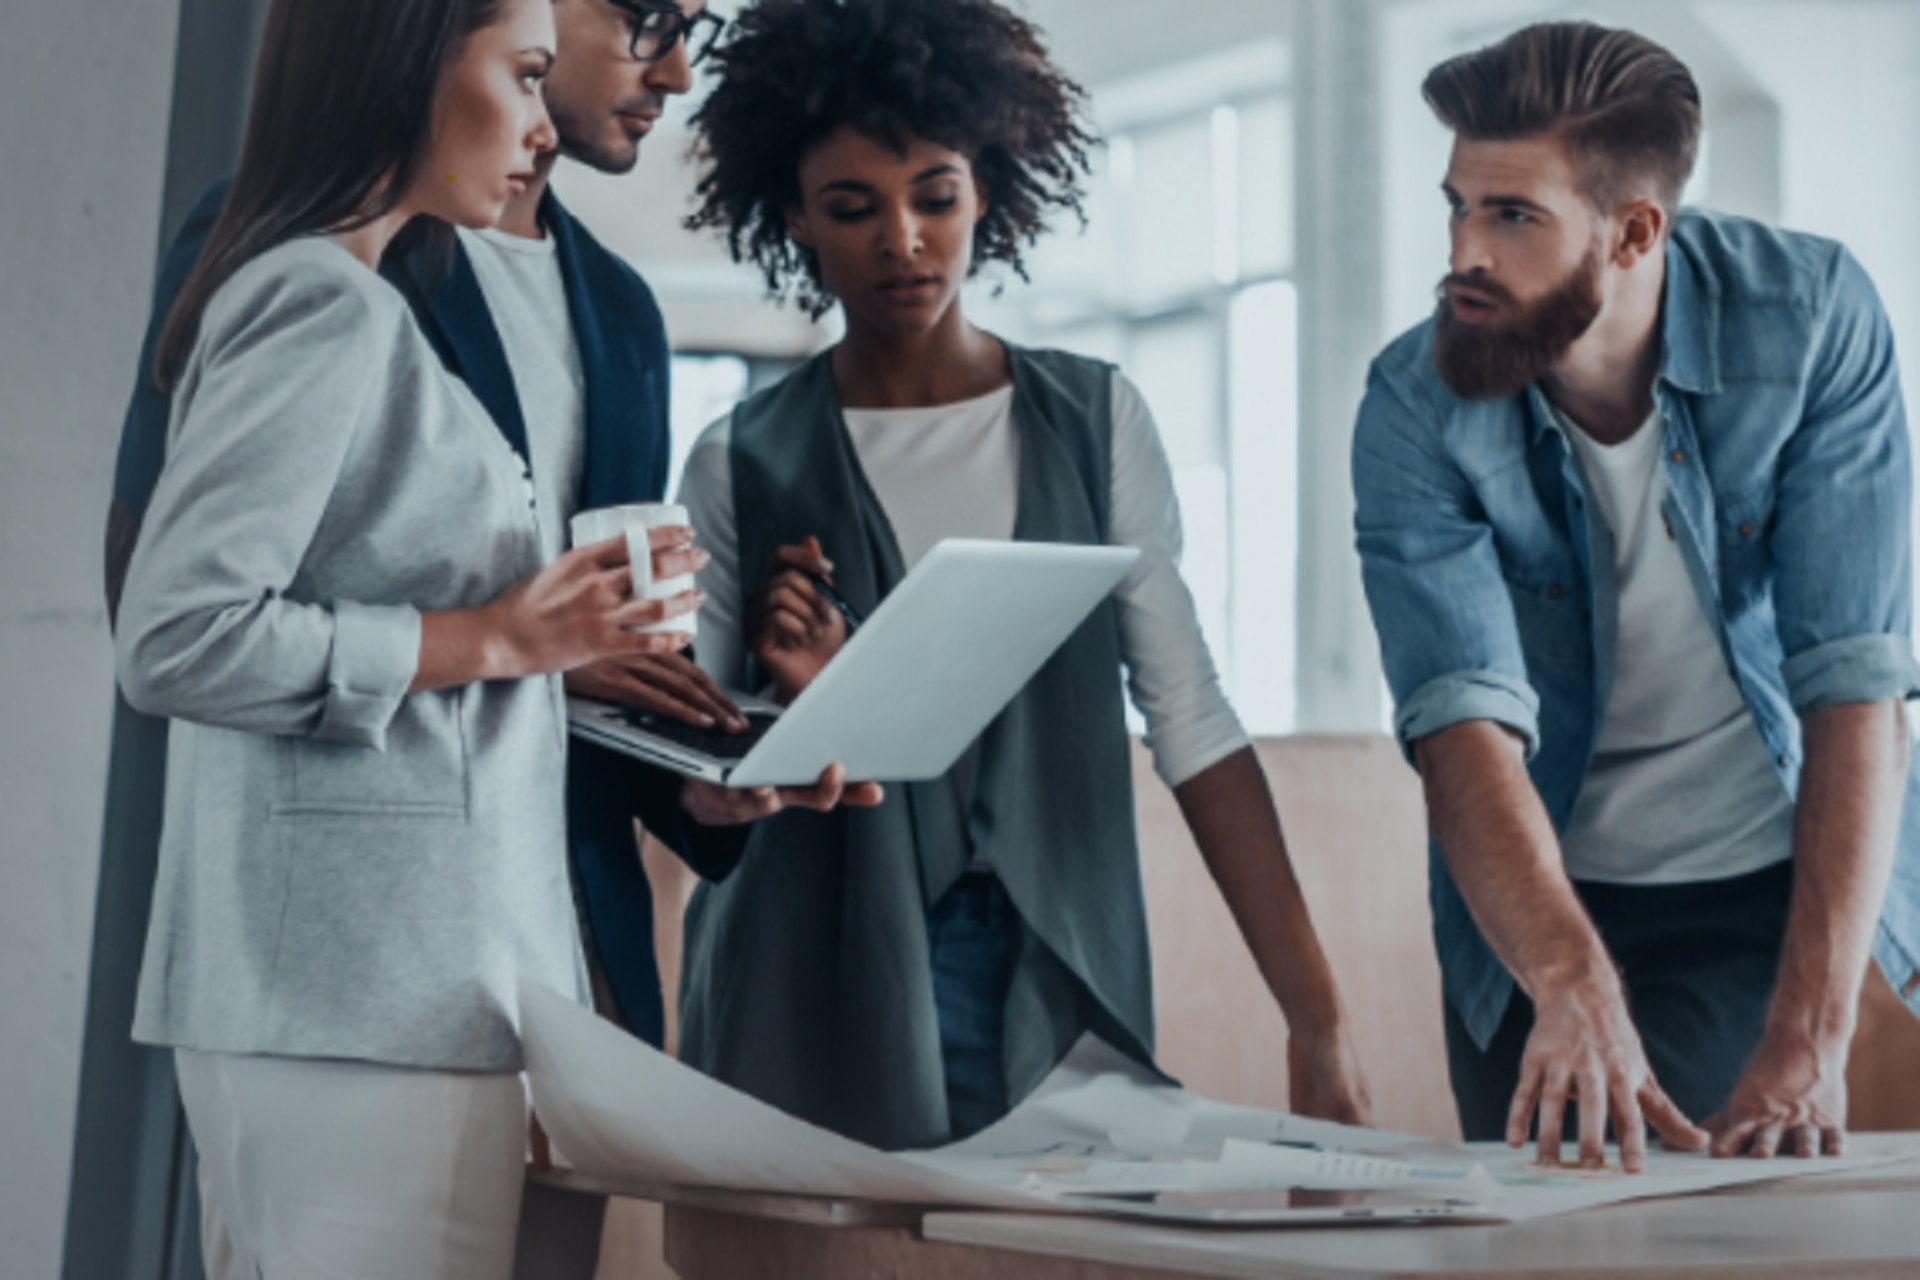 Success with PR Agencies: Six Tips from Agency Owners on How to Make the Most of What They Offer